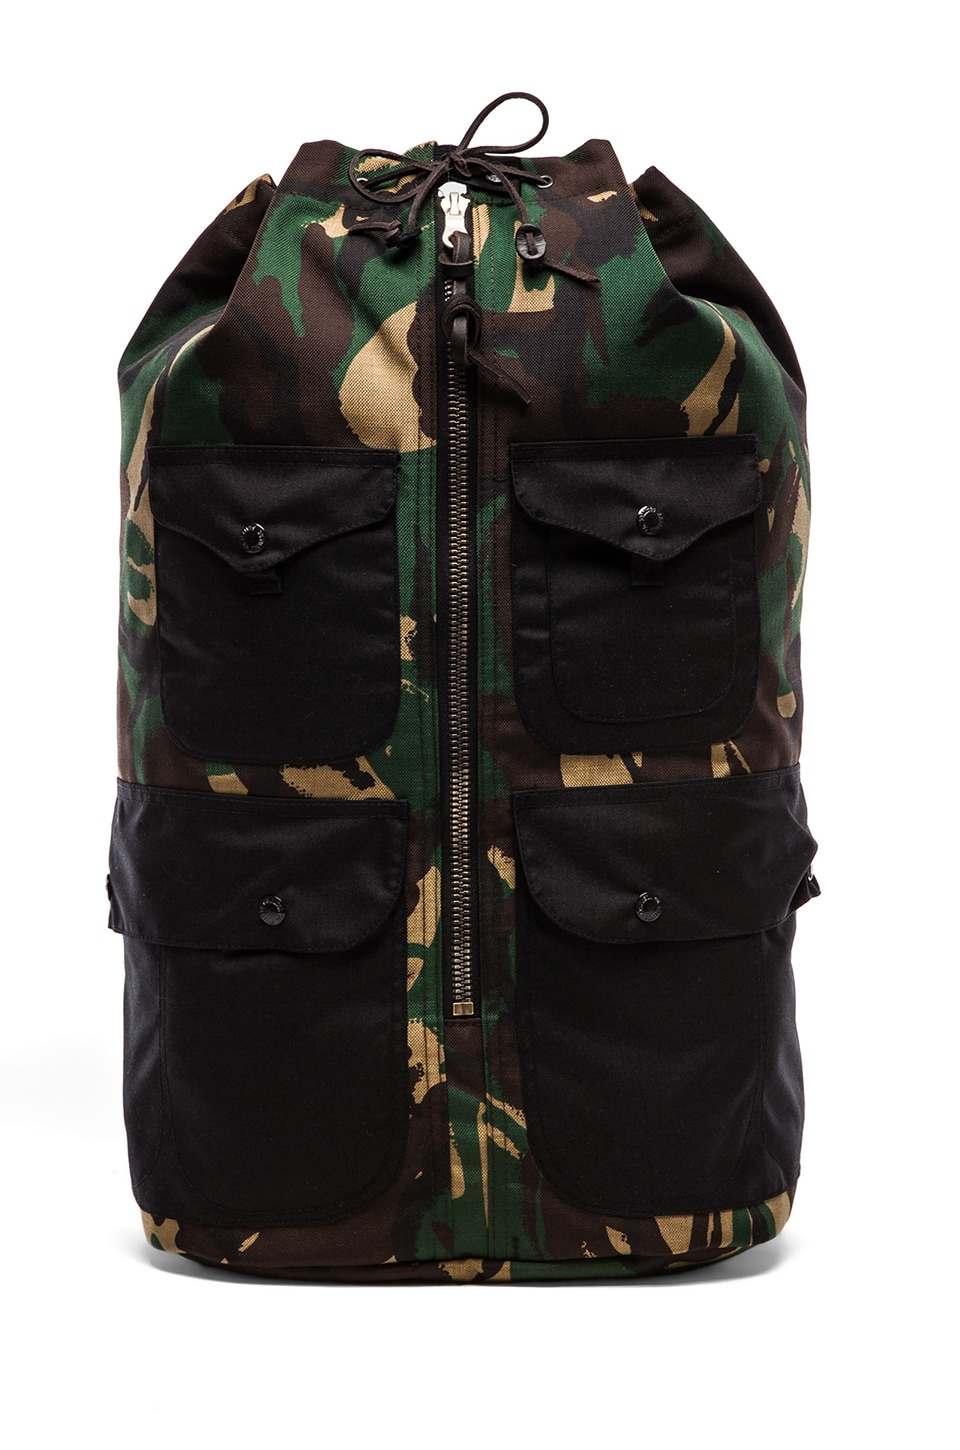 Filson Duffle Backpack in Camo